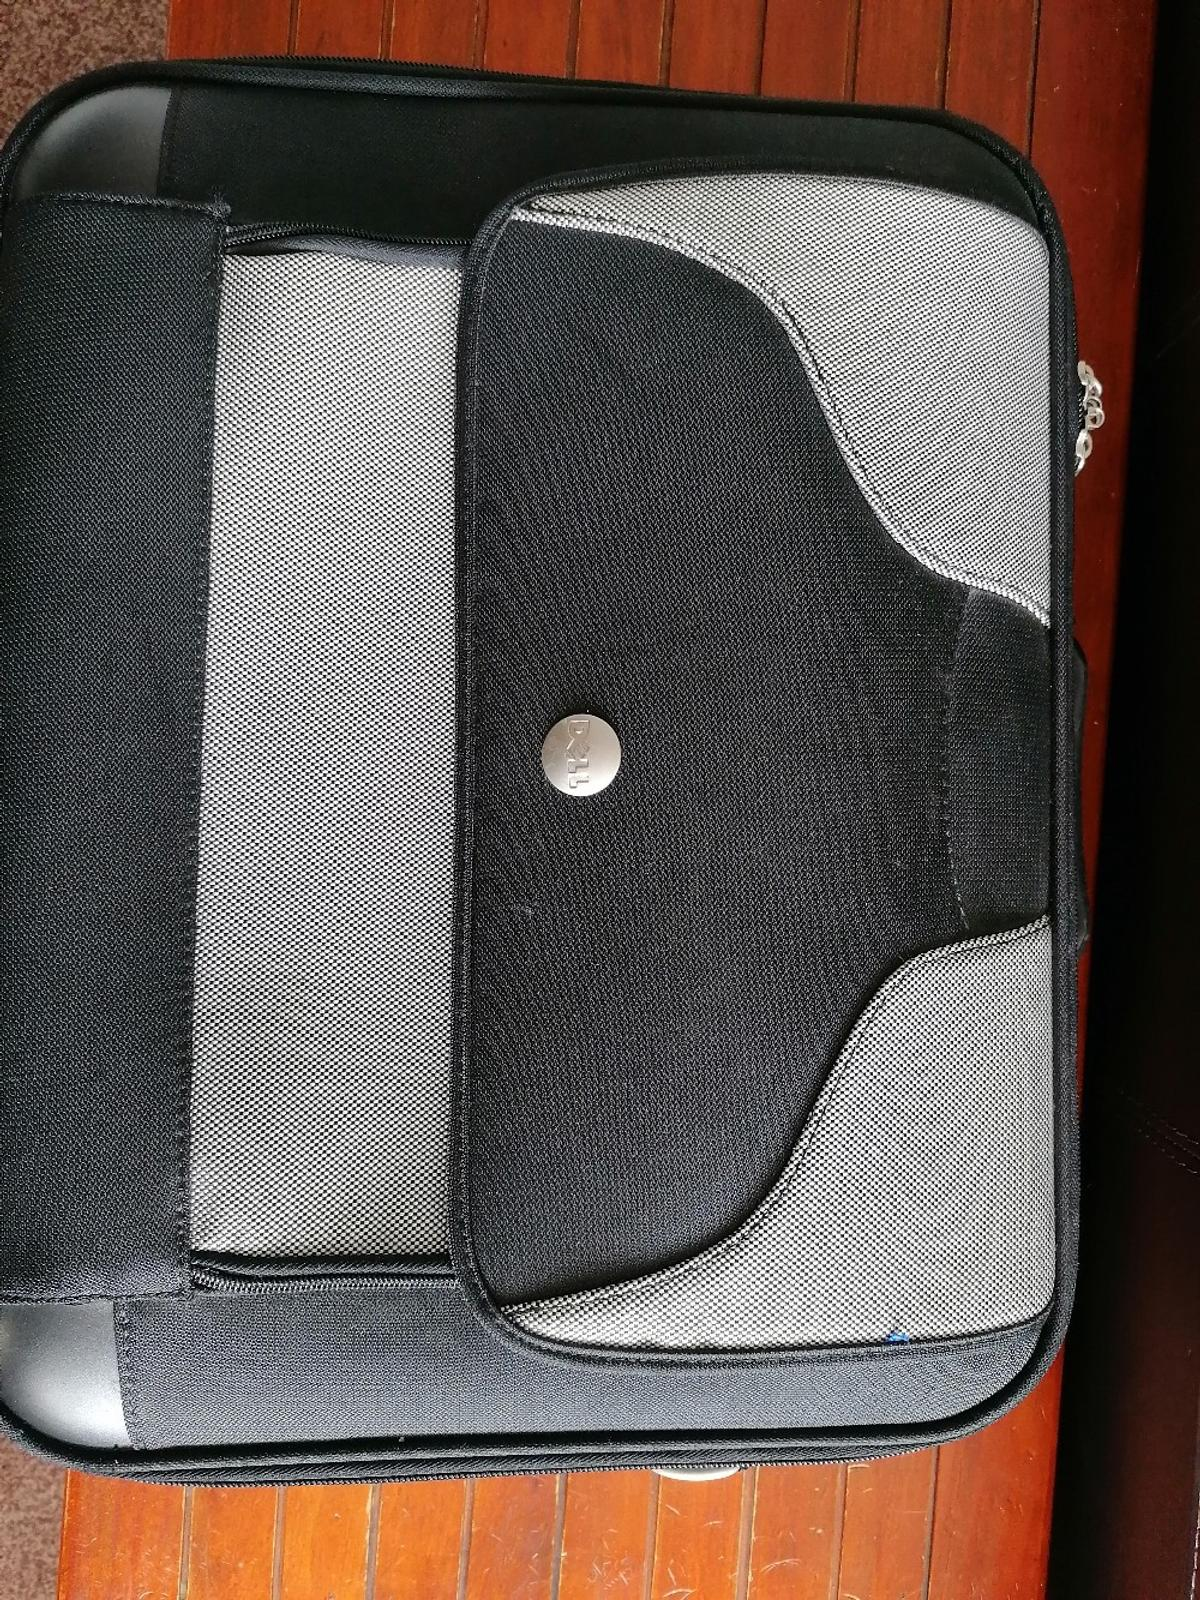 Strong, sturdy laptop bag. Still in excellent condition as hardly used. Has an optional strap use too. I've put price up a bit as postage will be more than £4. Price can be negotiated if picking up.